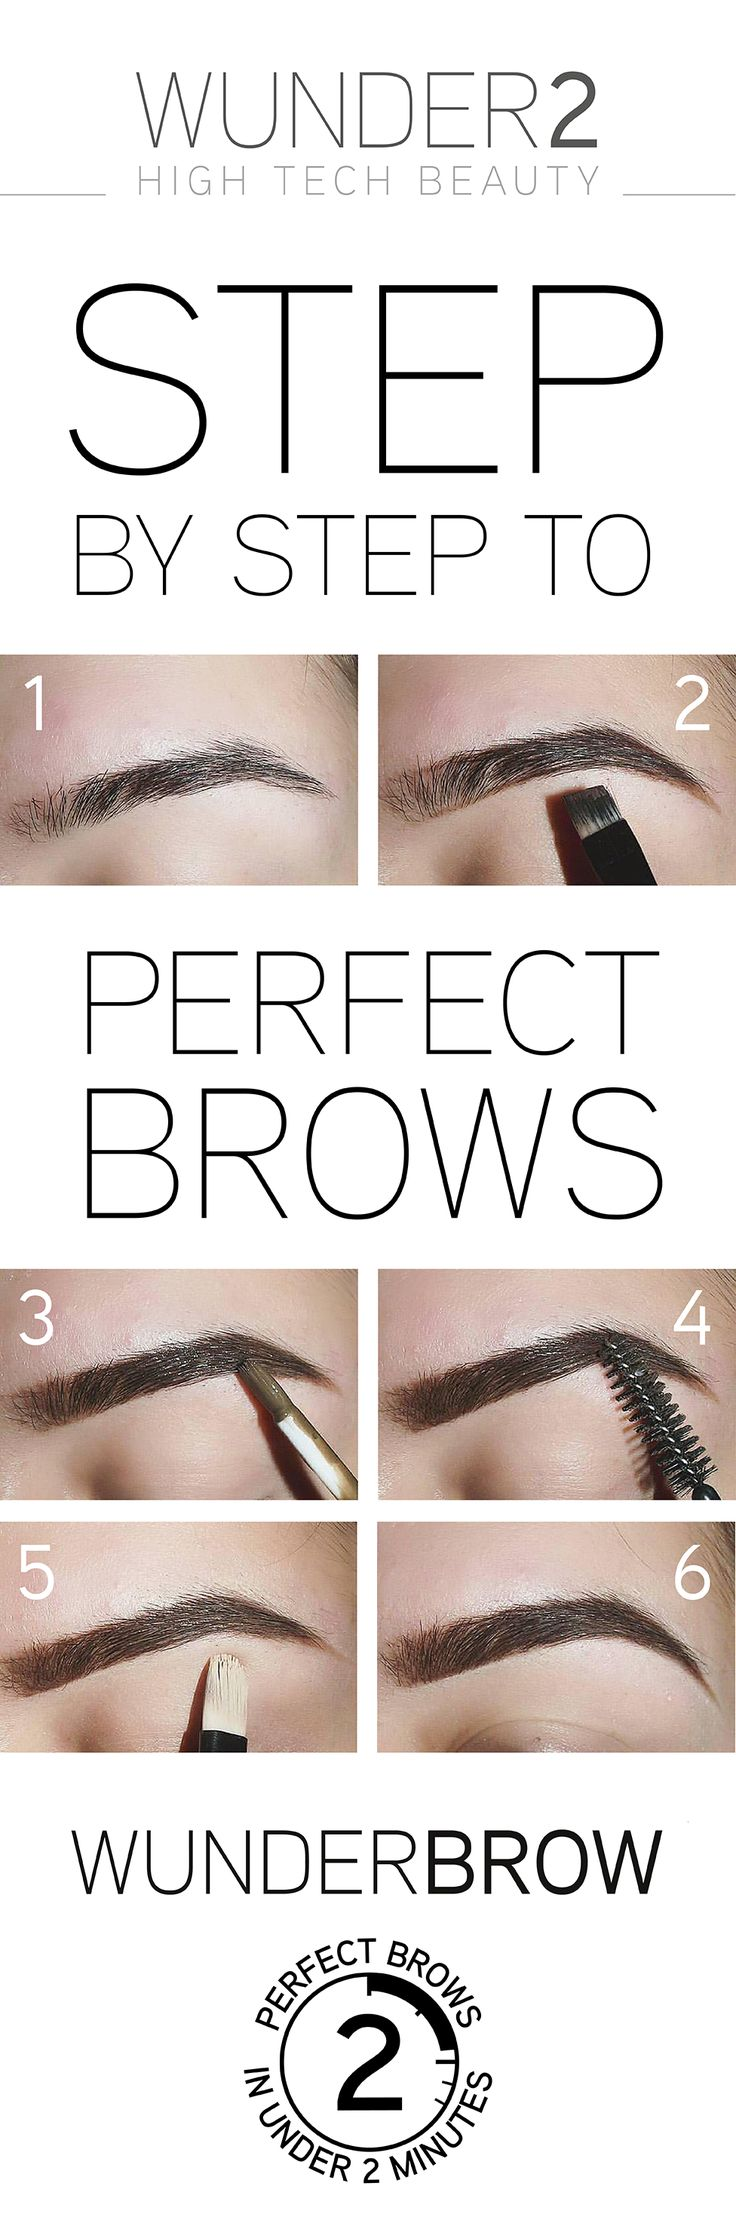 Perfect eyebrows in under 2 minutes that will last up to 3 days without smudging or transferring! Use this pictorial as a guide to help you get the eyebrows you love! Why not try WunderBrow today for only $22 + FREE shipping & a 30 day risk-free money back guarantee. Simply click on the 'visit' button above. The order form takes less than 2 minutes to complete. Once done you'll receive an order confirmation email. You'll never want to try another eyebrow product once you've tried WunderBrow!